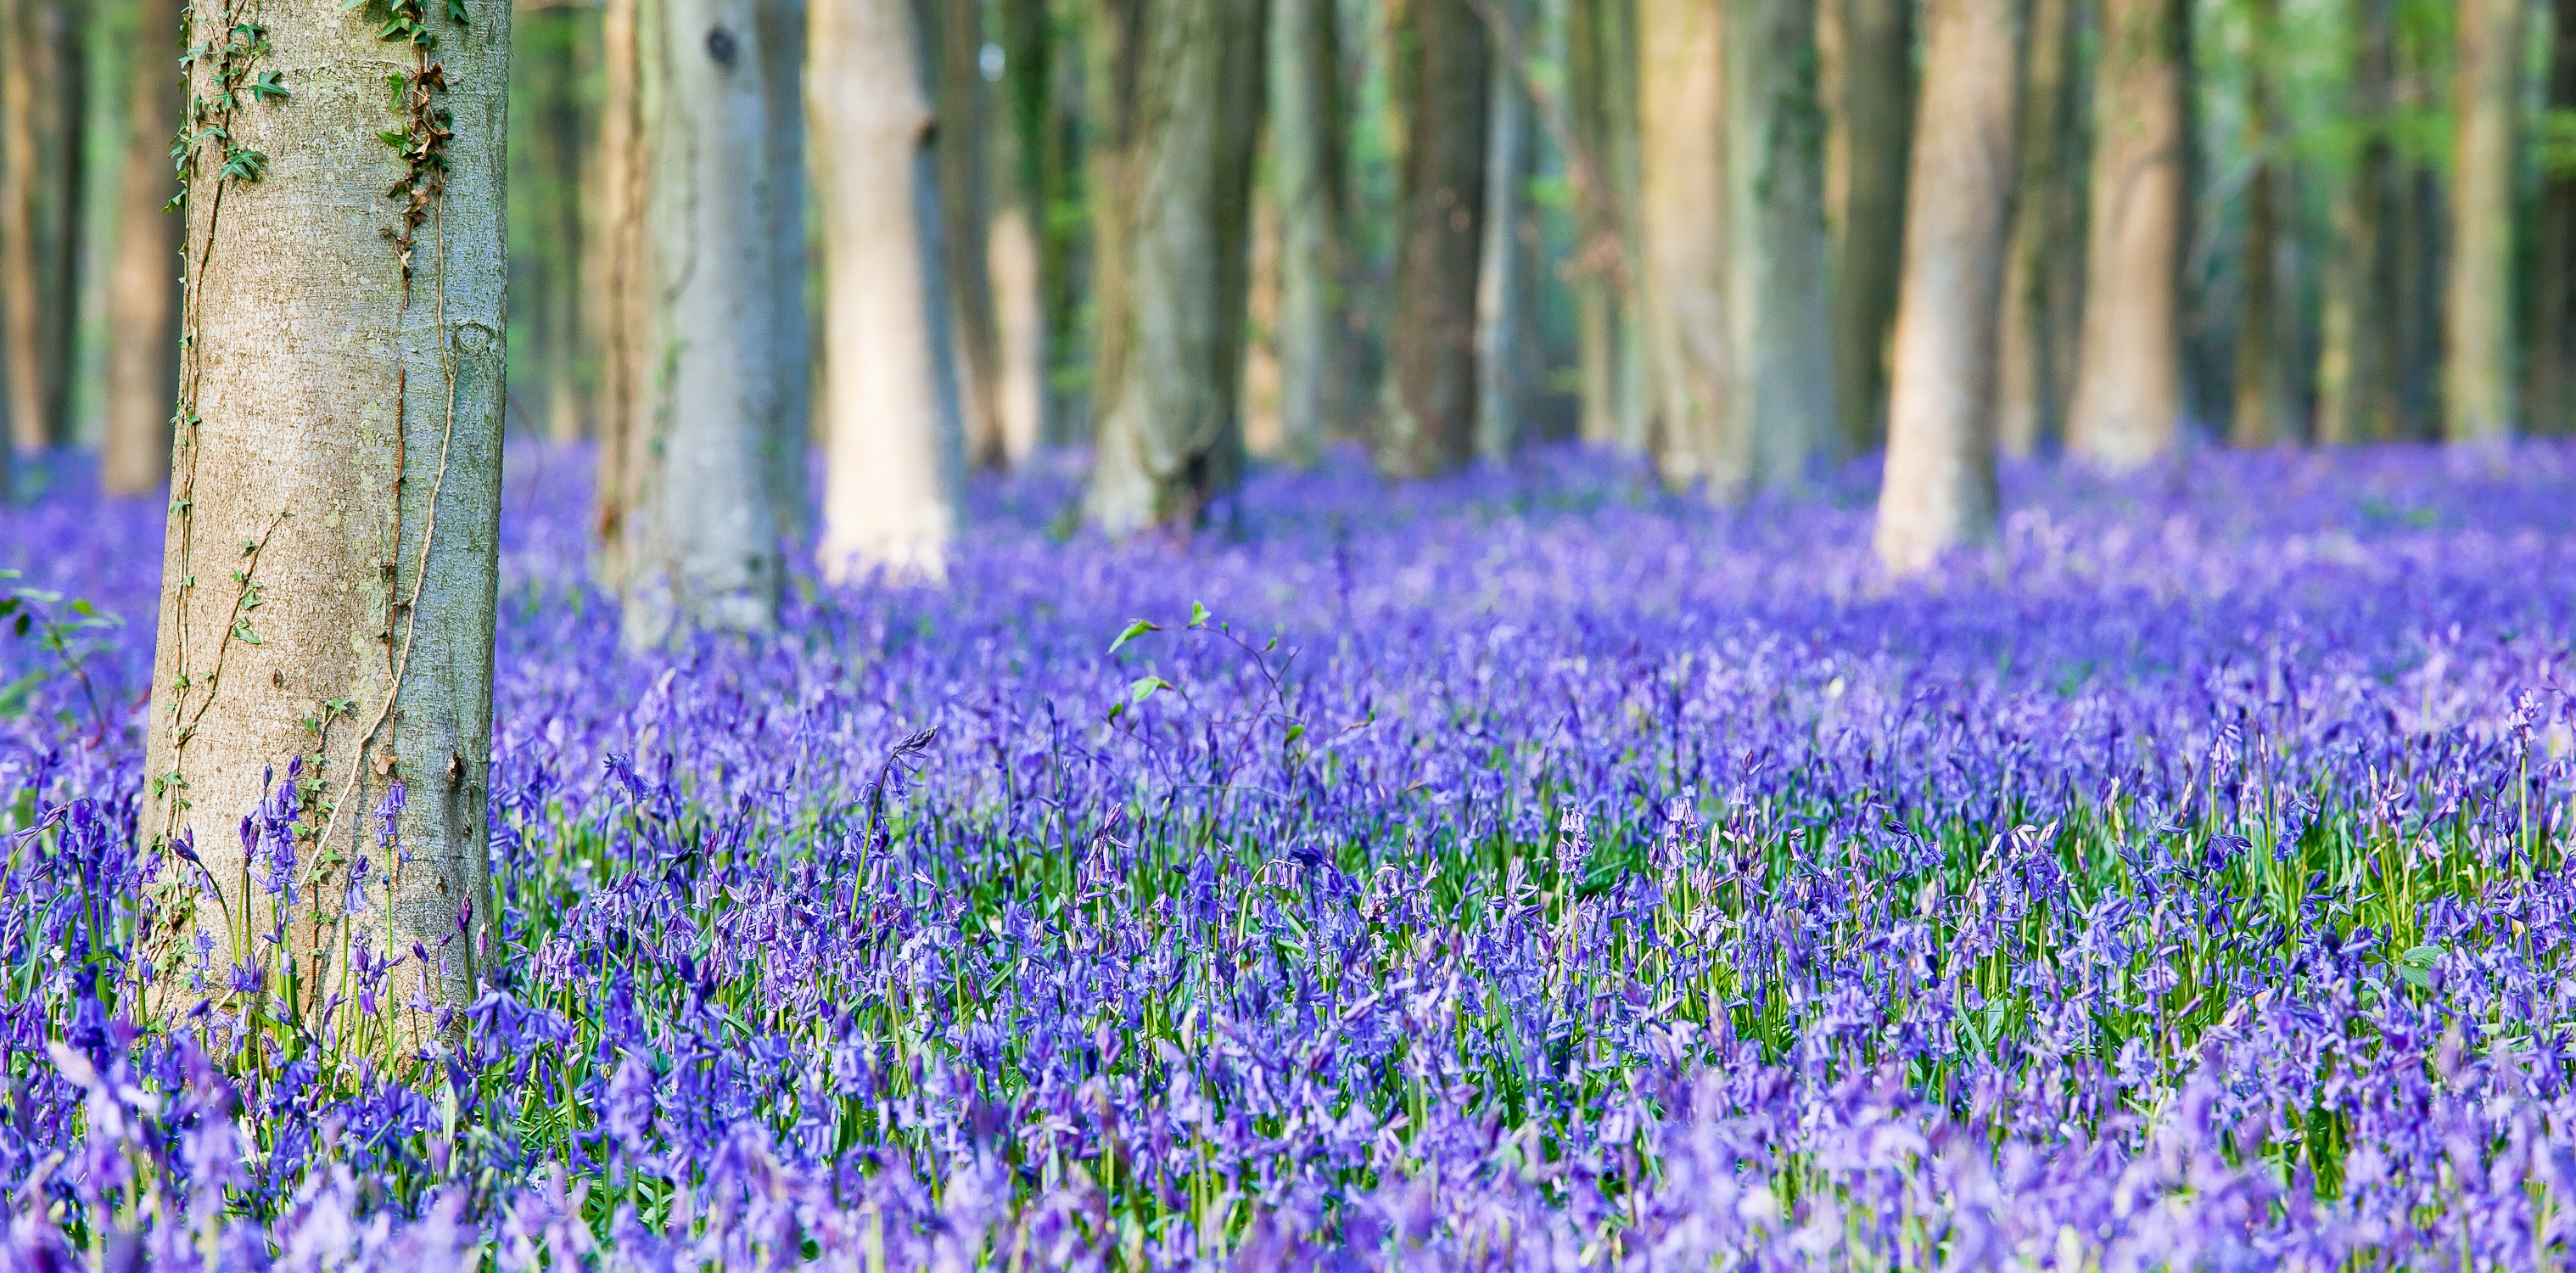 bluebell desktop wallpaper